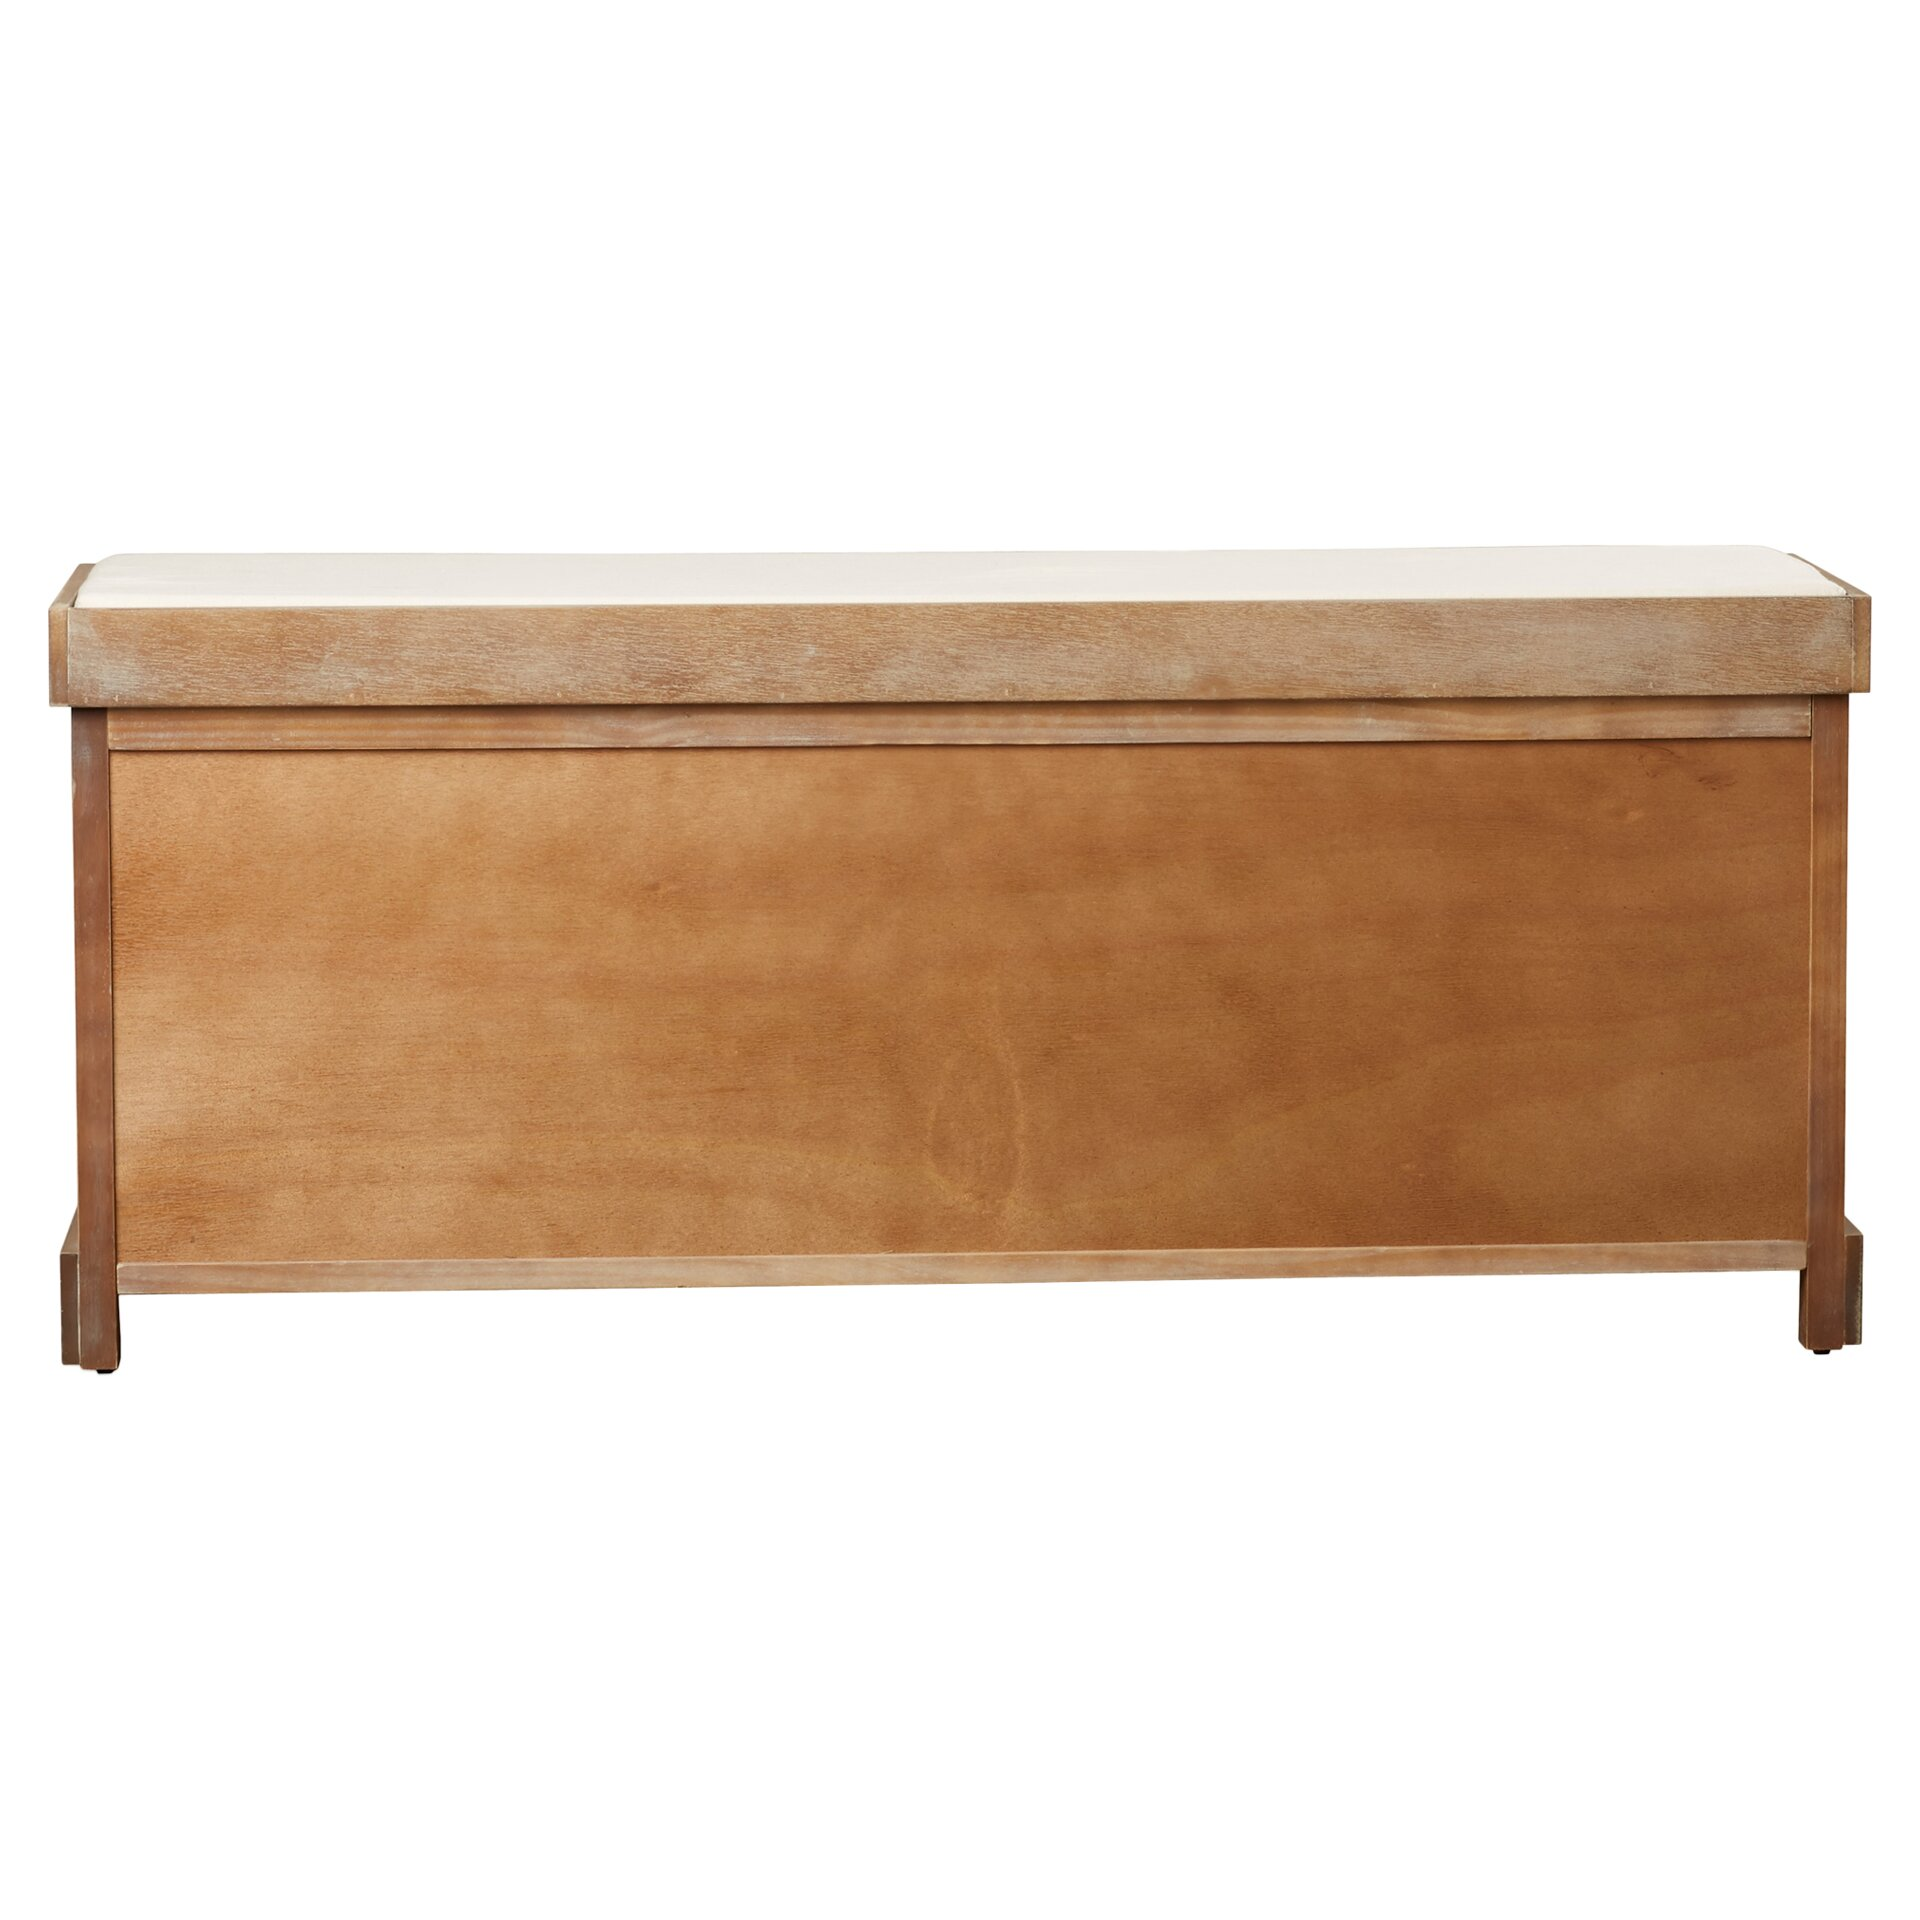 Beachcrest Home Seminole Wood Storage Hallway Bench Reviews Wayfair